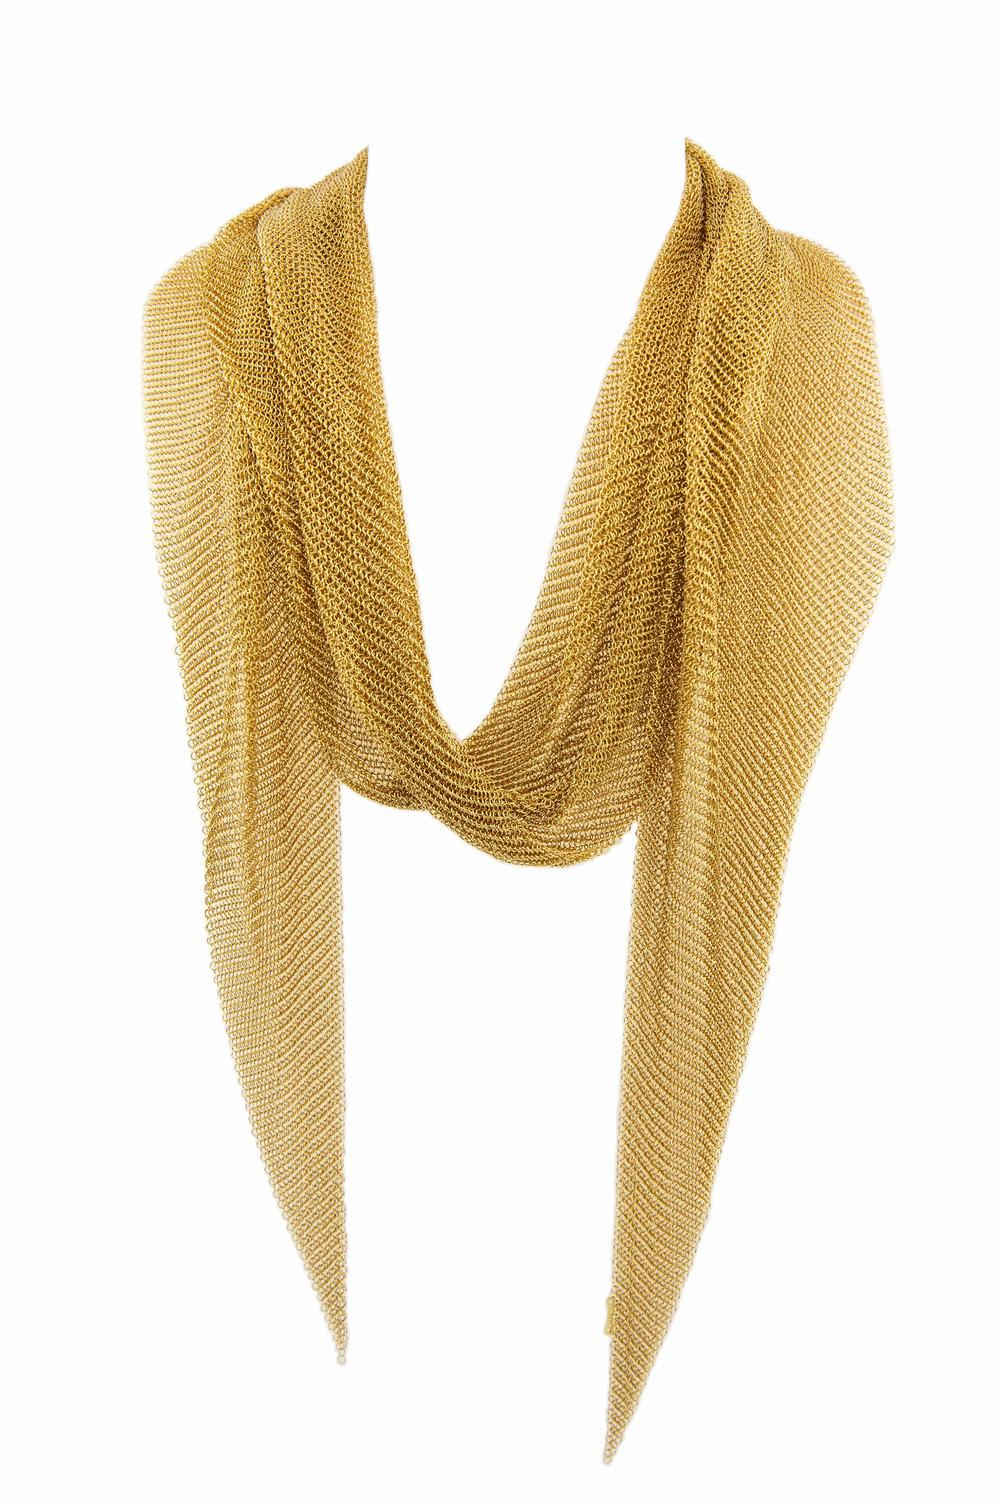 and co elsa peretti mesh scarf necklace in 18k